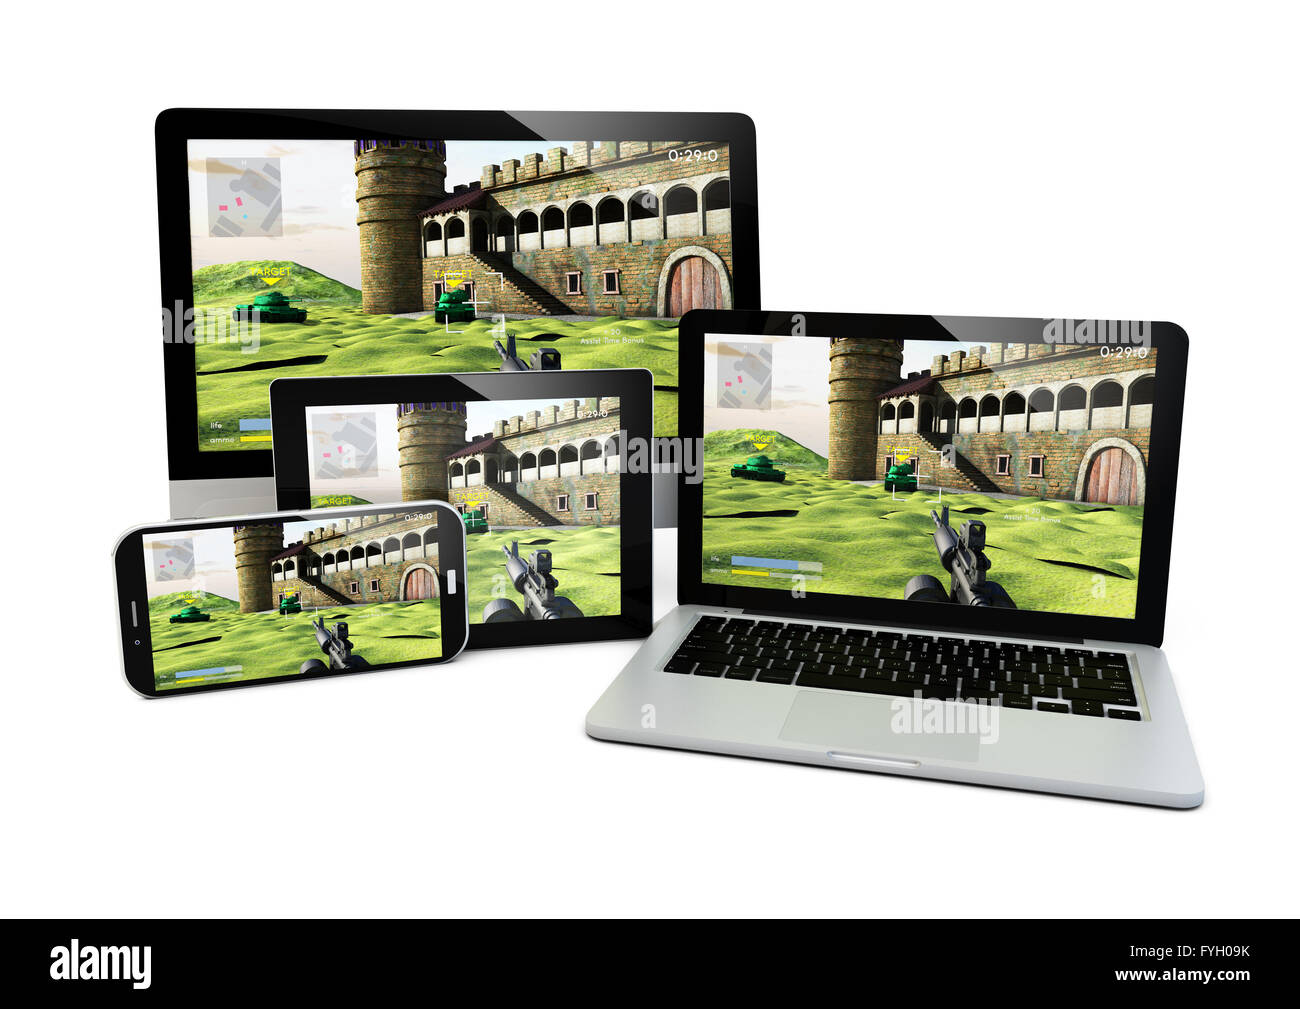 render of laptop, computer, tablet and smartphone with a shooter game on the screen - Stock Image